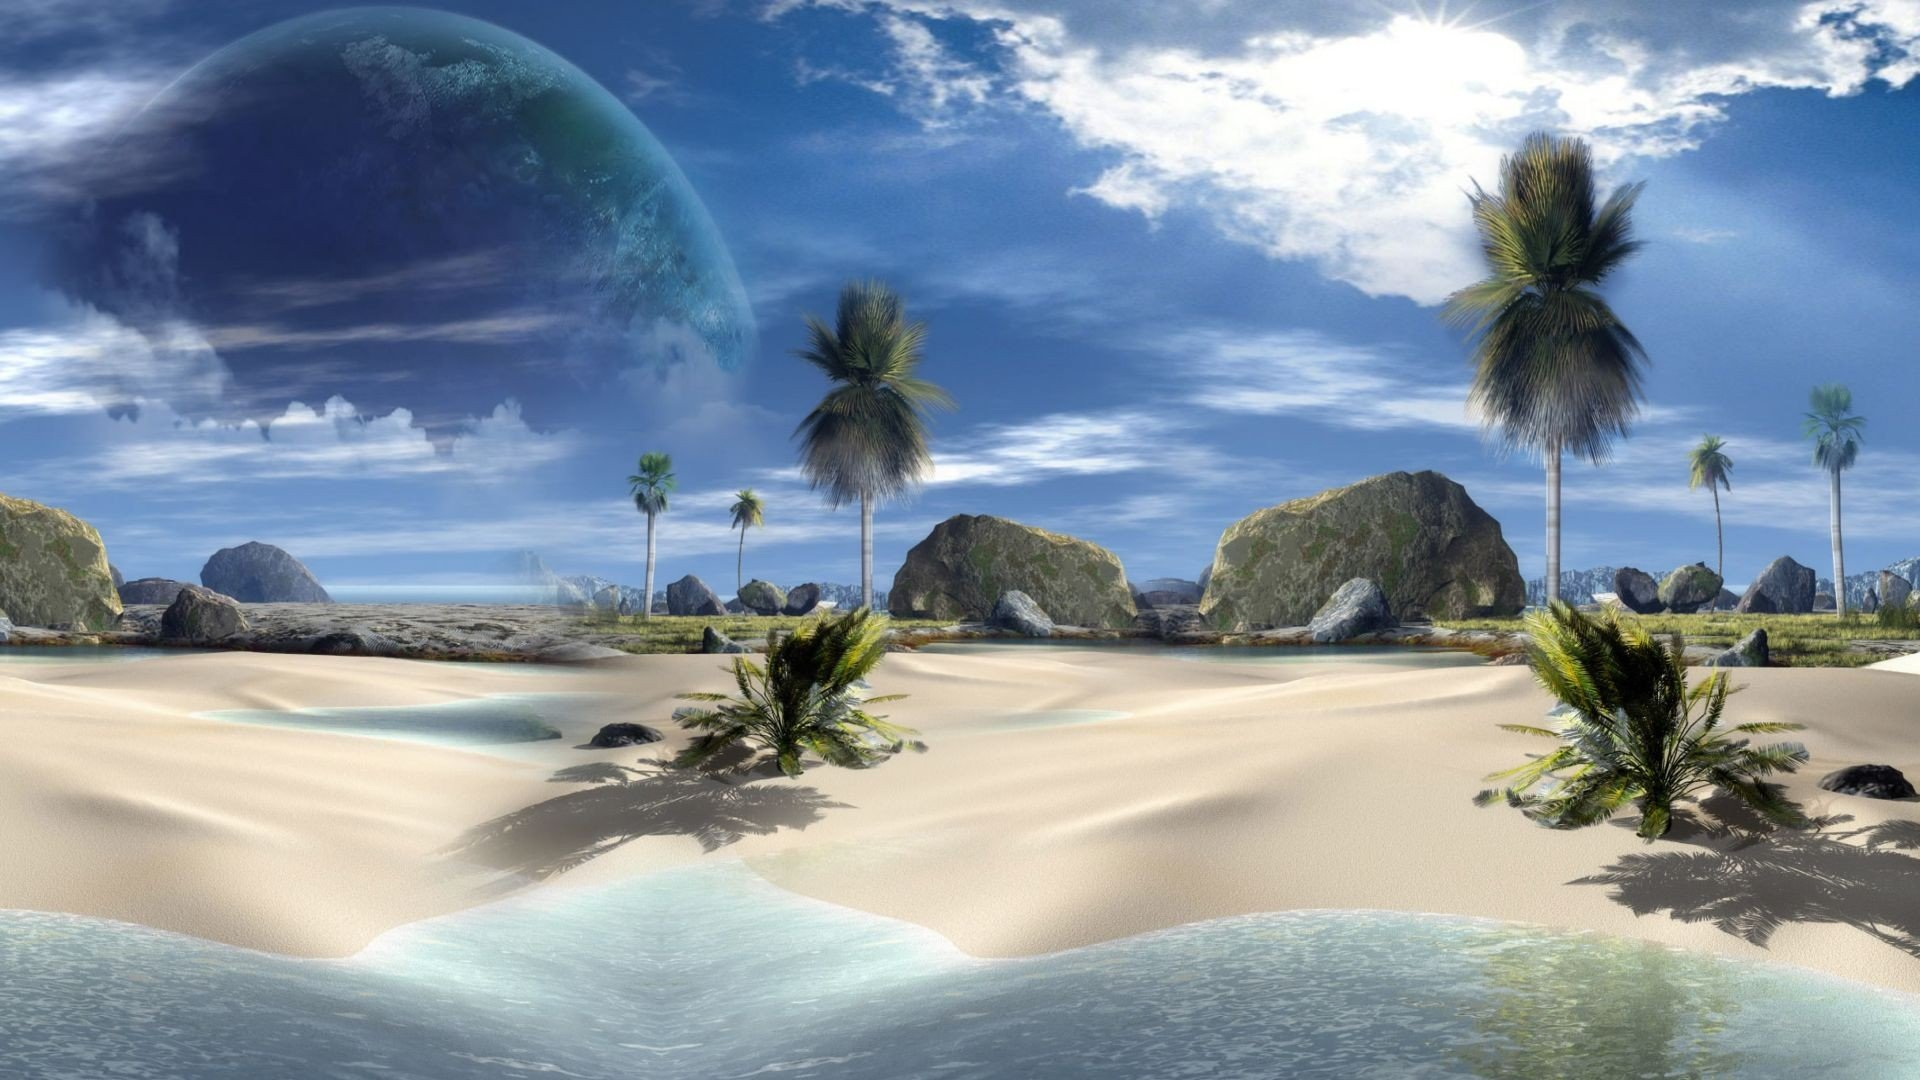 3D Beach Wallpapers for Desktop - WallpaperSafari